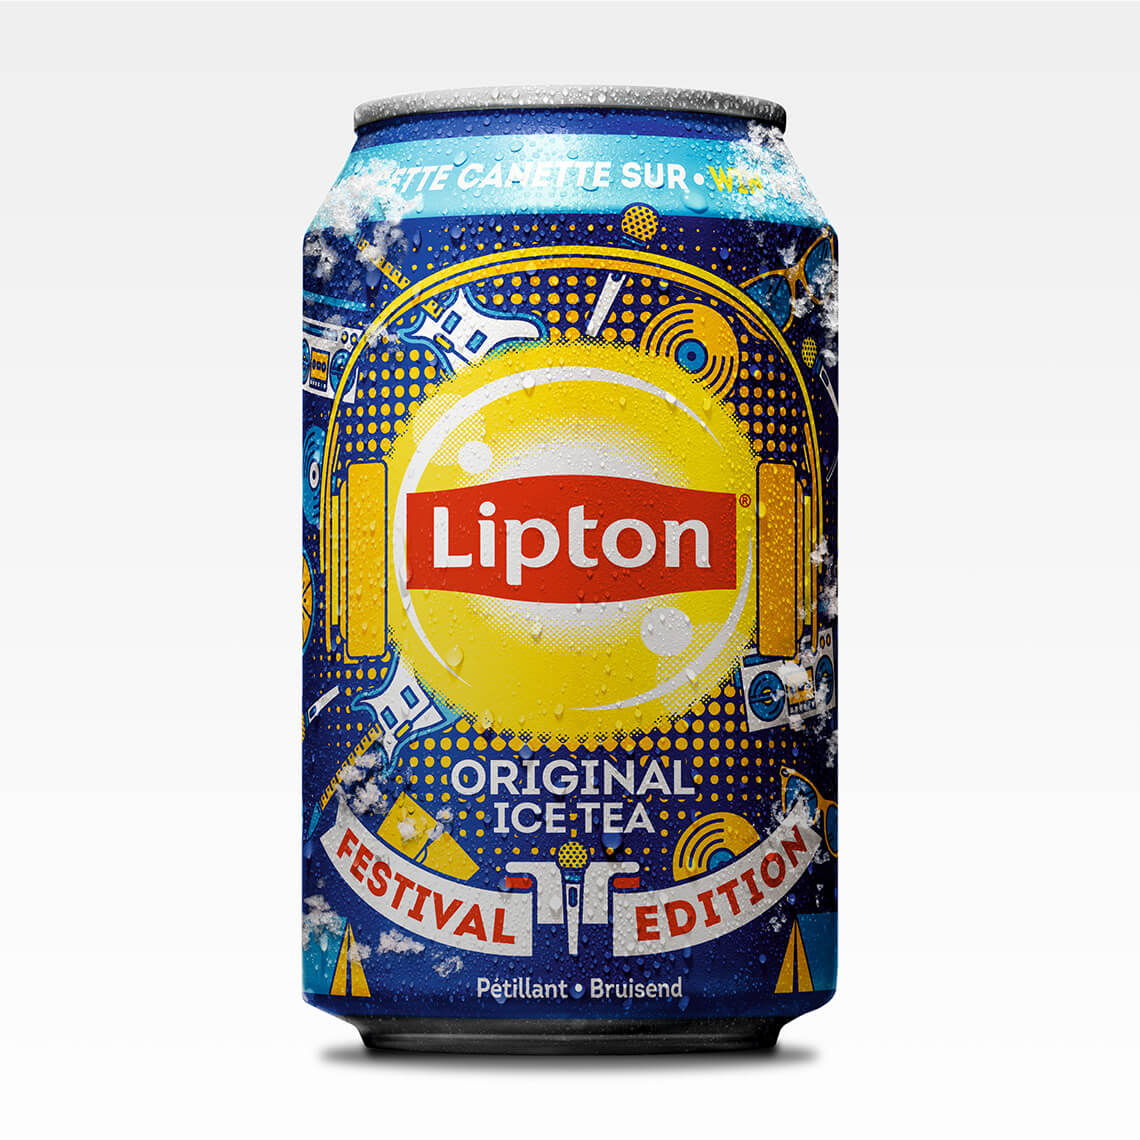 Lipton Ice Tea – Festival Edition